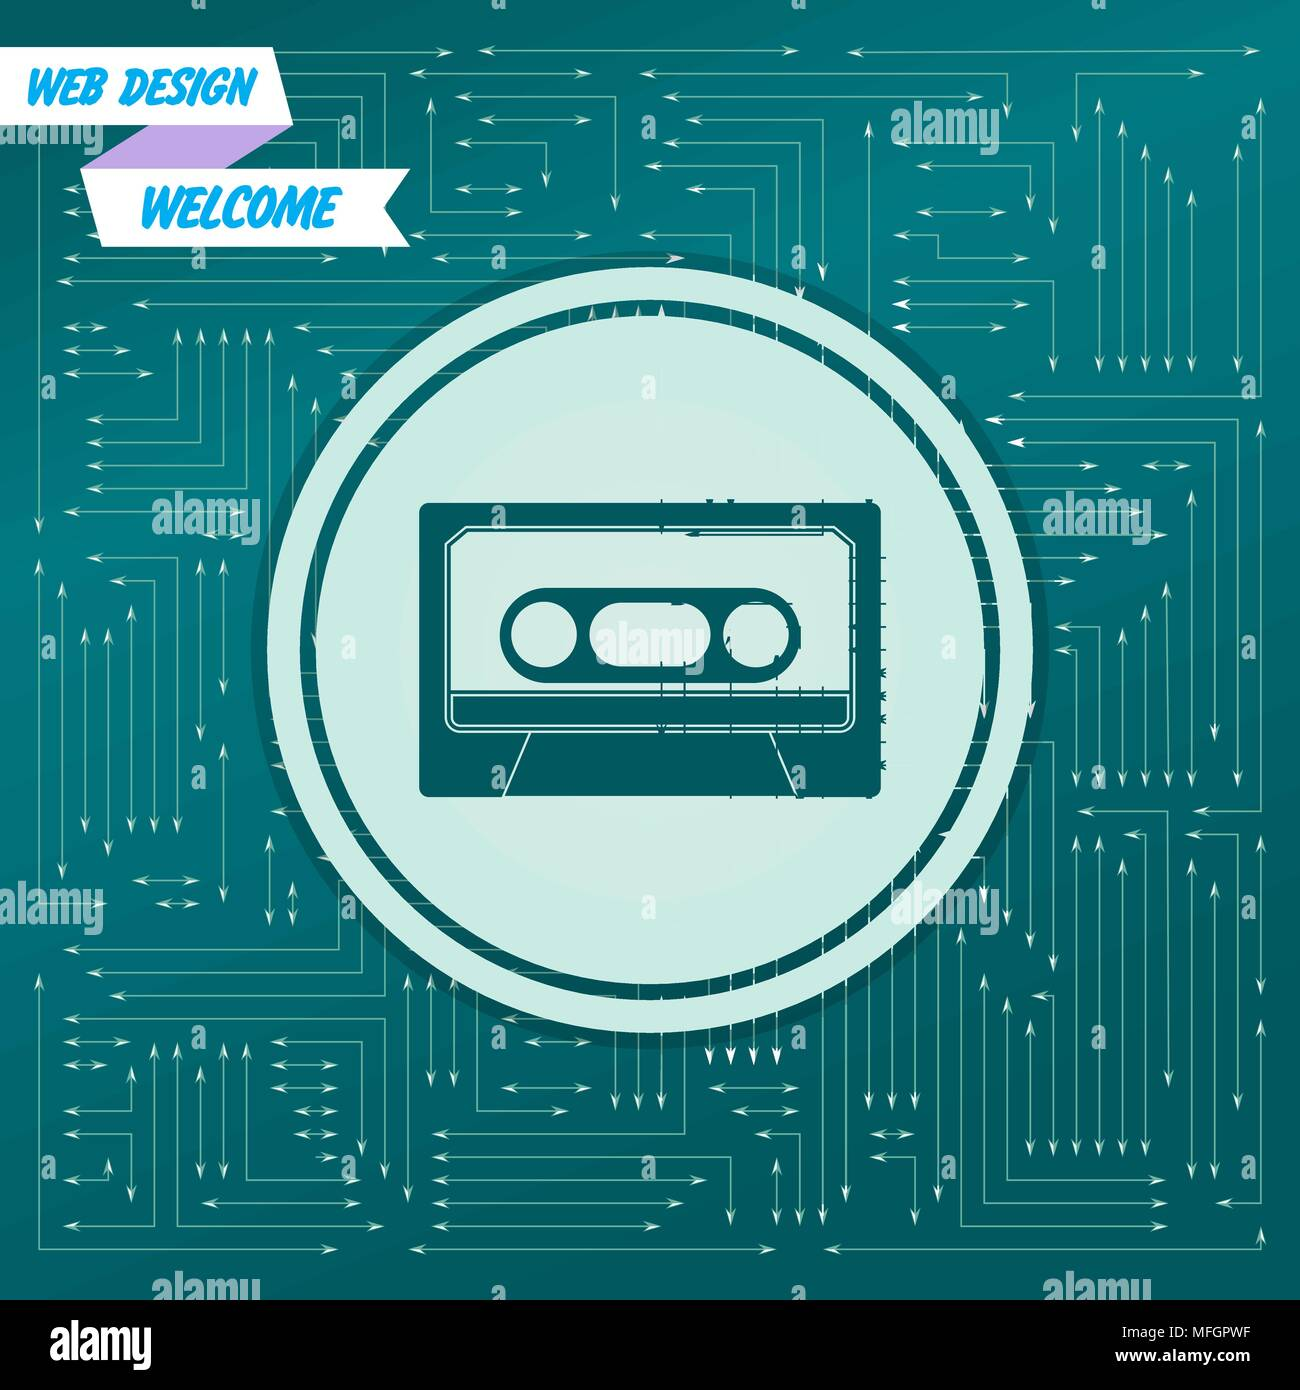 Cassette icon on a green background, with arrows in different directions. It appears on the electronic board. Vector illustration - Stock Vector